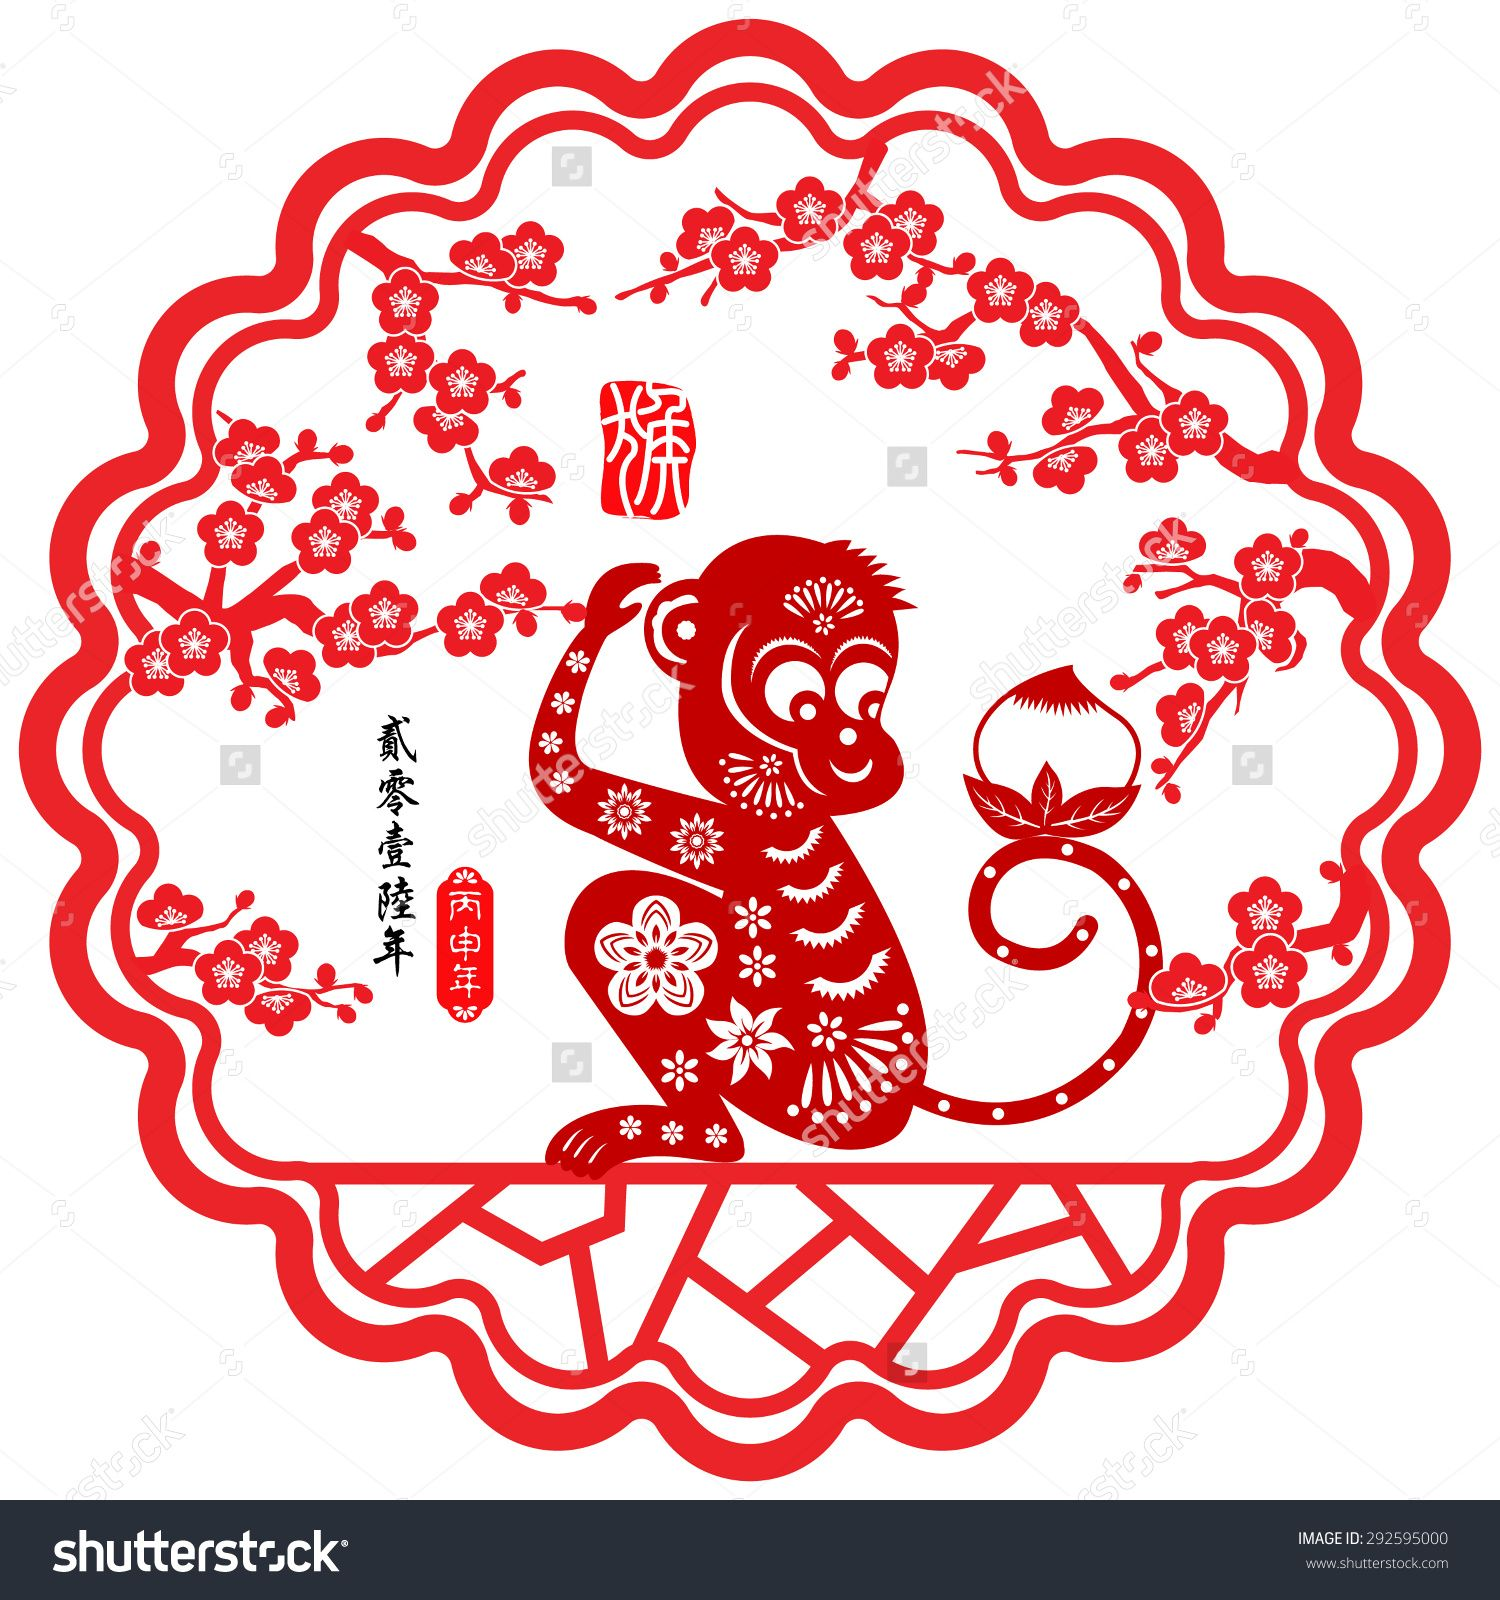 chinese new year monkey google search - Chinese New Year Year Of The Monkey